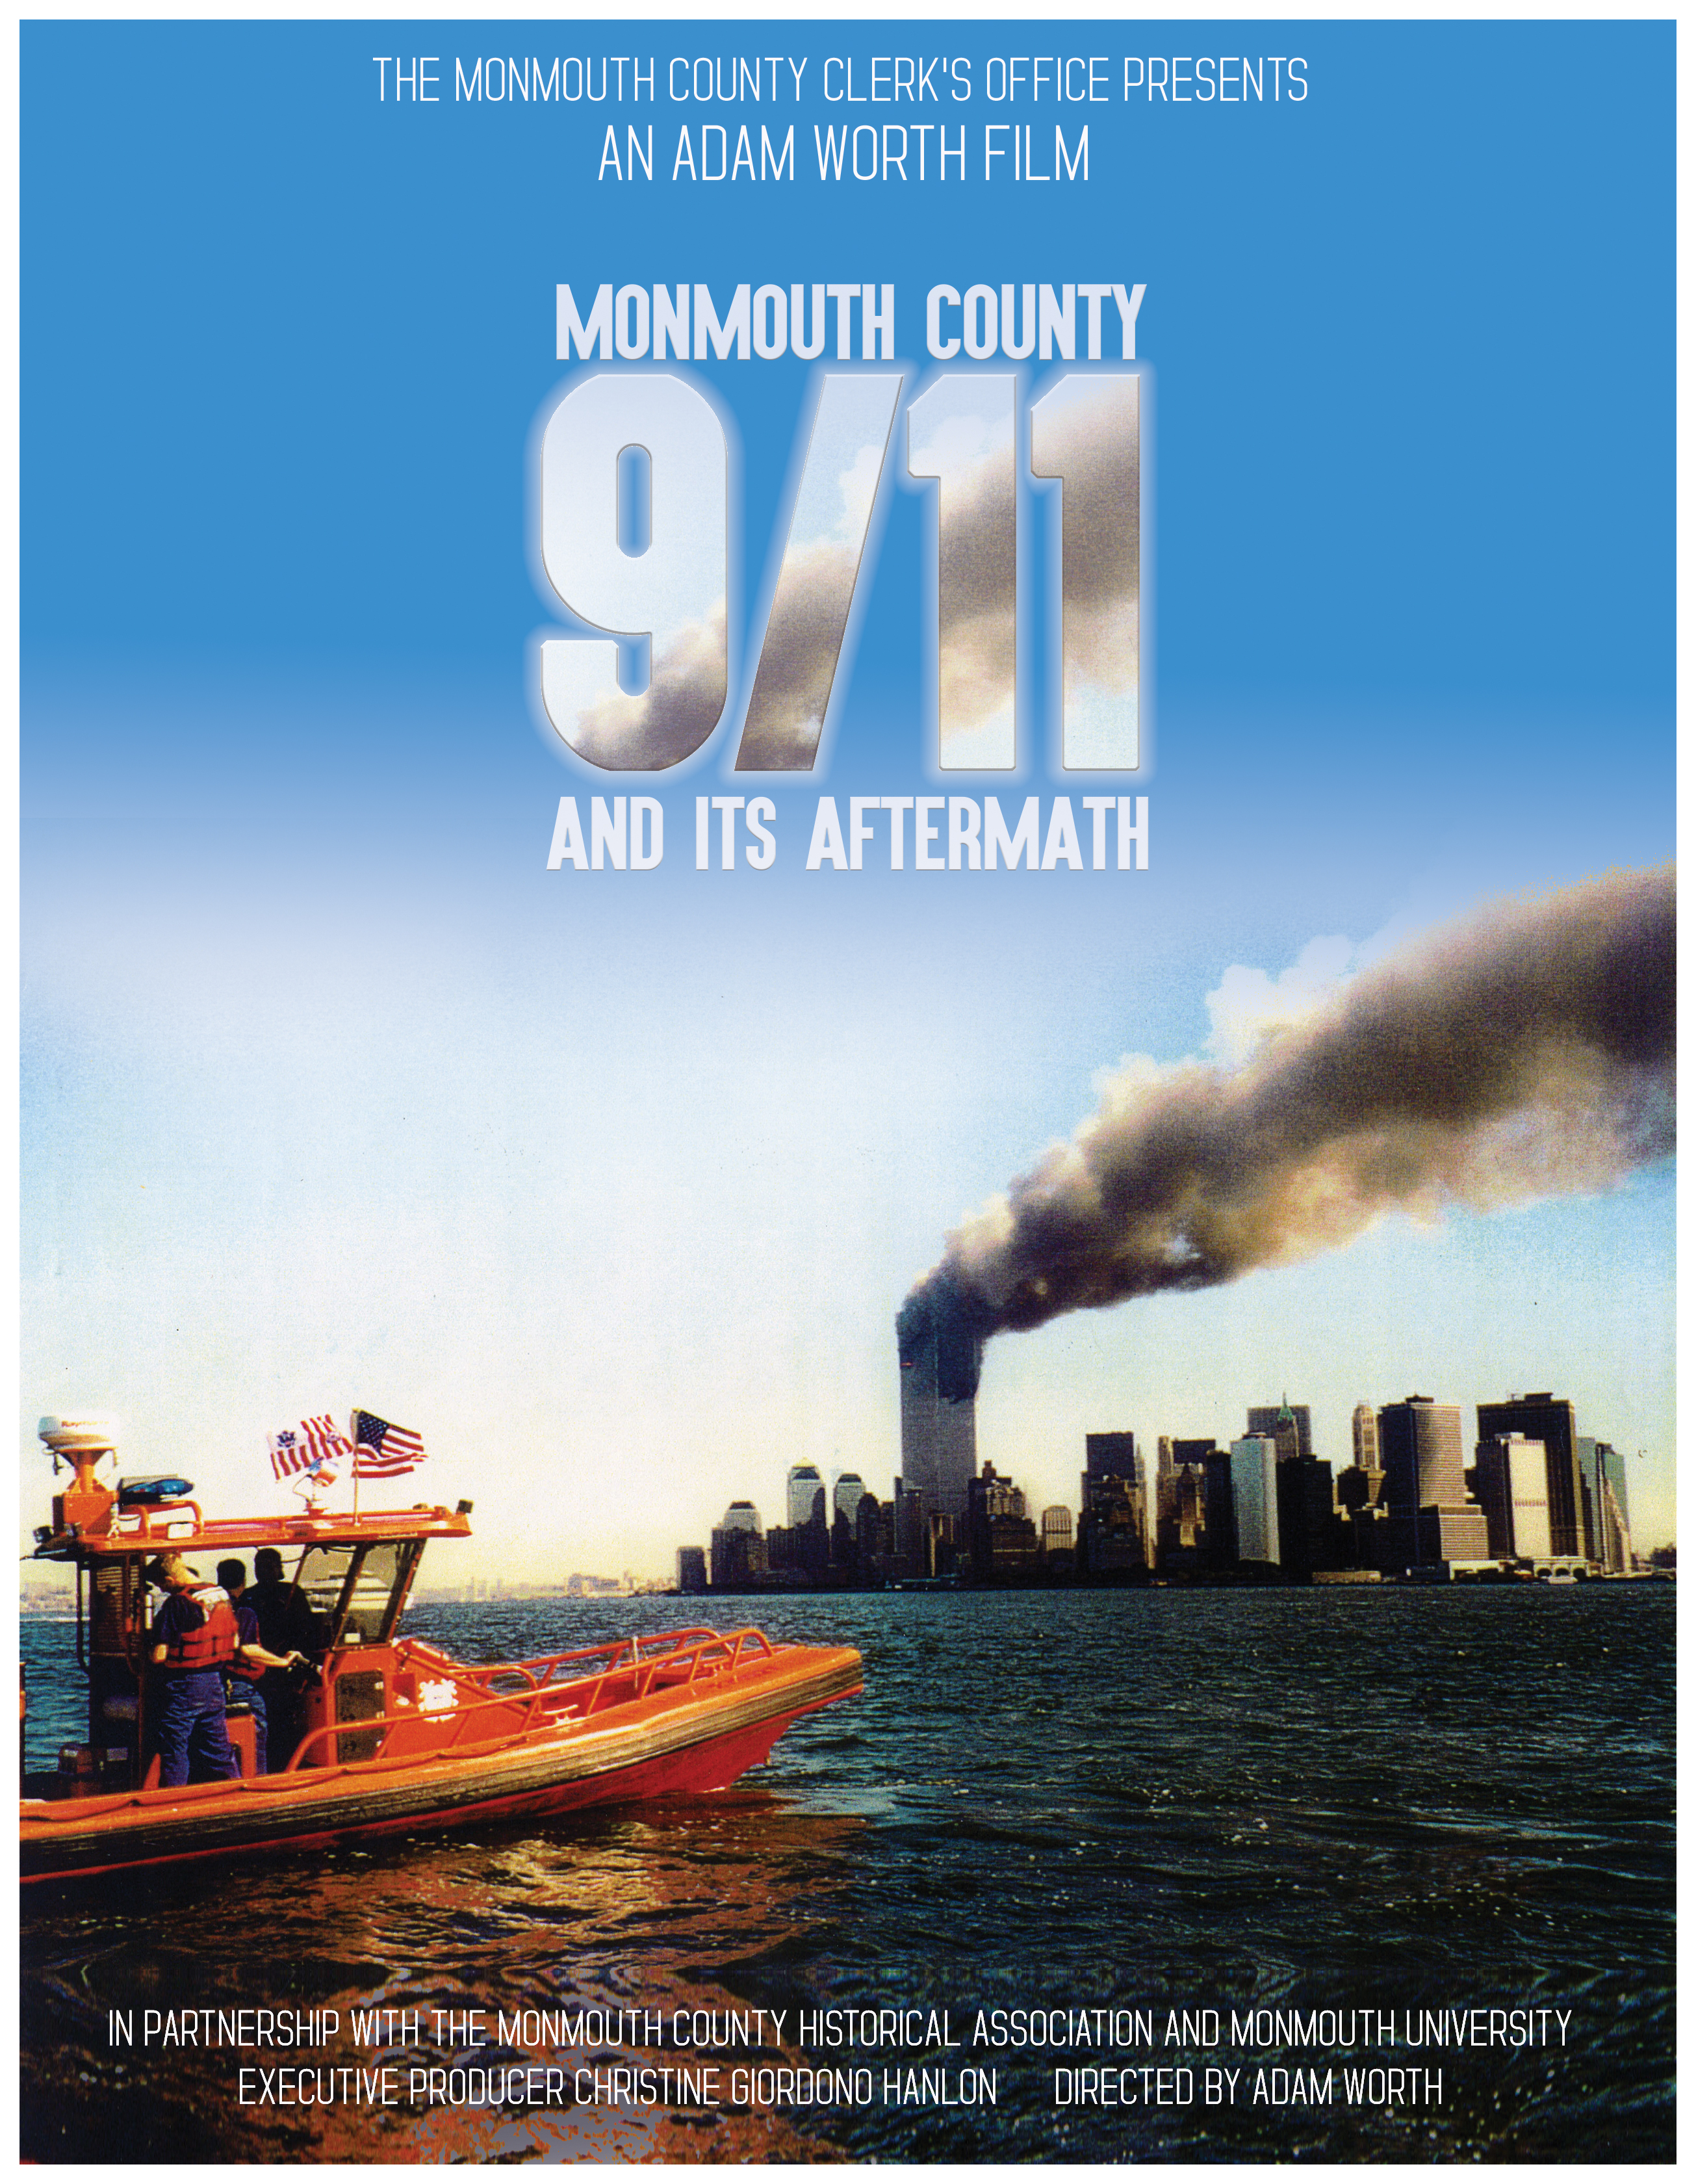 """featured image for: <center>CLERK HANLON ANNOUNCES PREMIERE OF """"MONMOUTH COUNTY, 9/11, AND ITS AFTERMATH"""" FILM TO COMMEMORATE THE 20TH ANNIVERSARY OF 9/11/01 <br><br>Feature film to accompany the County Historical Association's Exhibit</center>"""